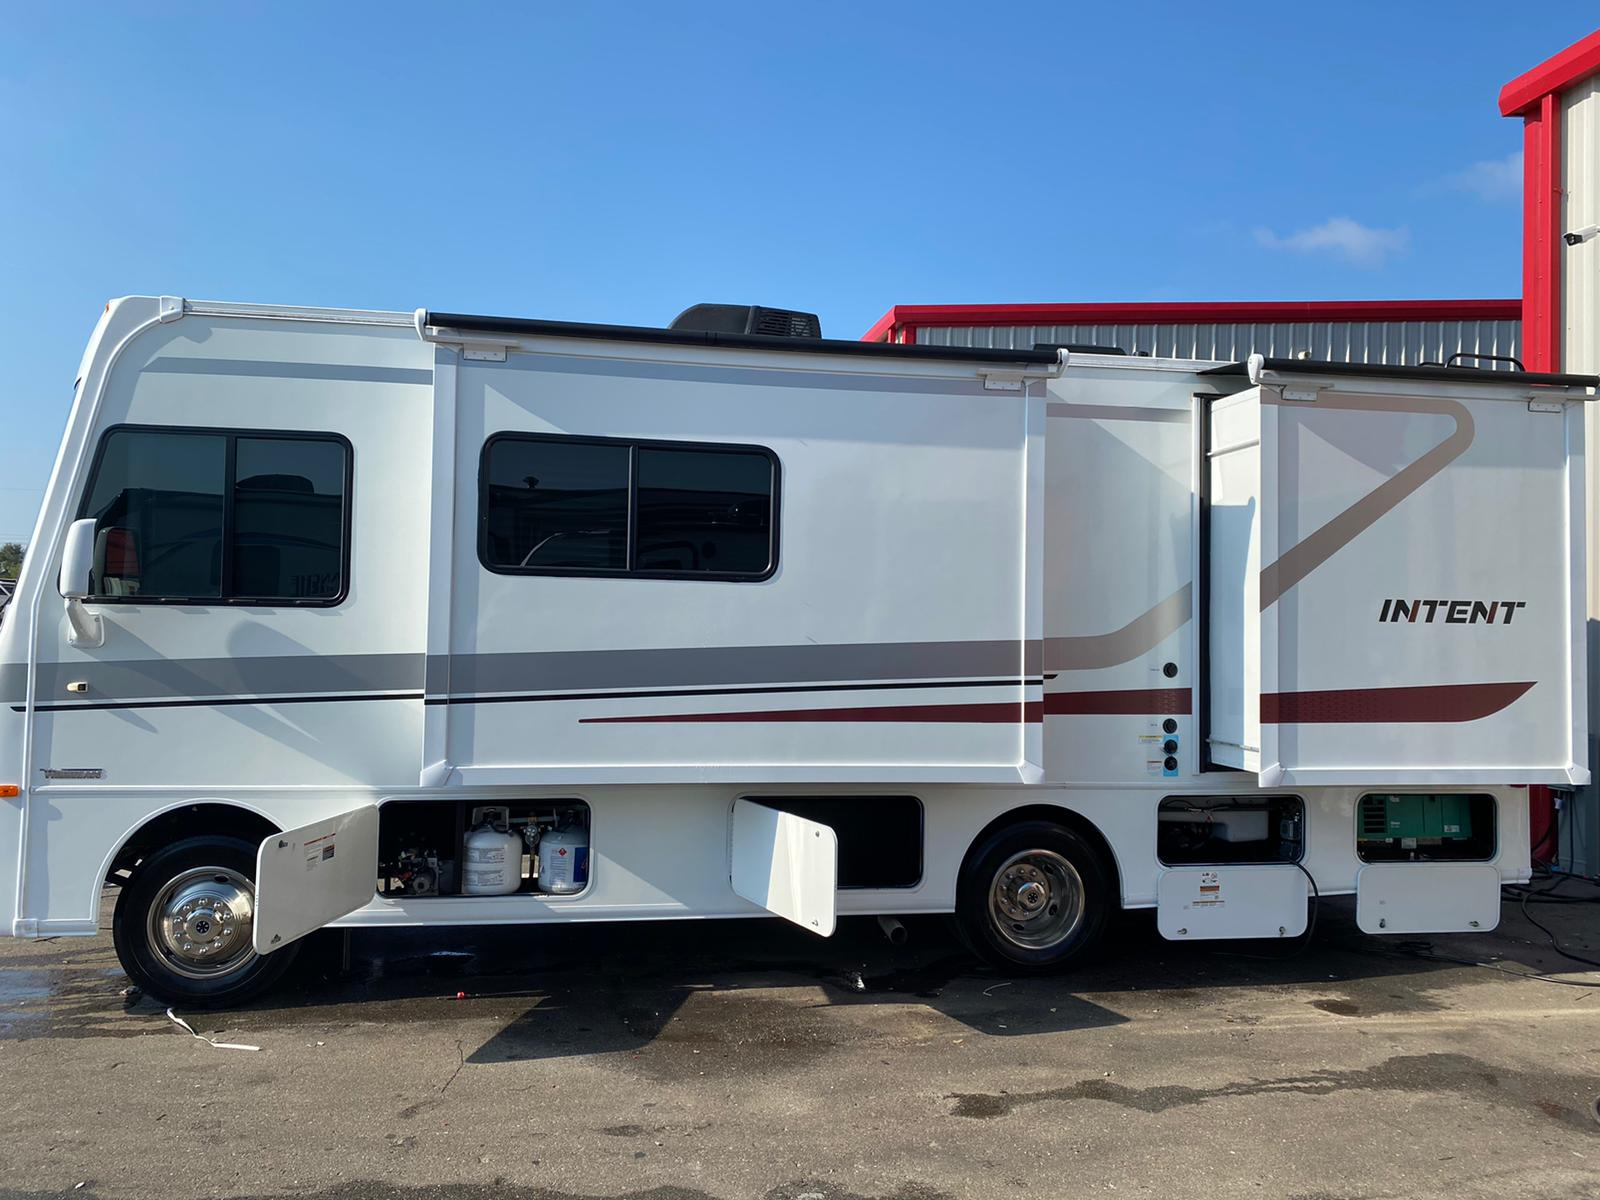 Extendable Dinning Area, Bed Room Area, Propane replaceable bottles, Storage compartment & generator. Winnebago Other 2019